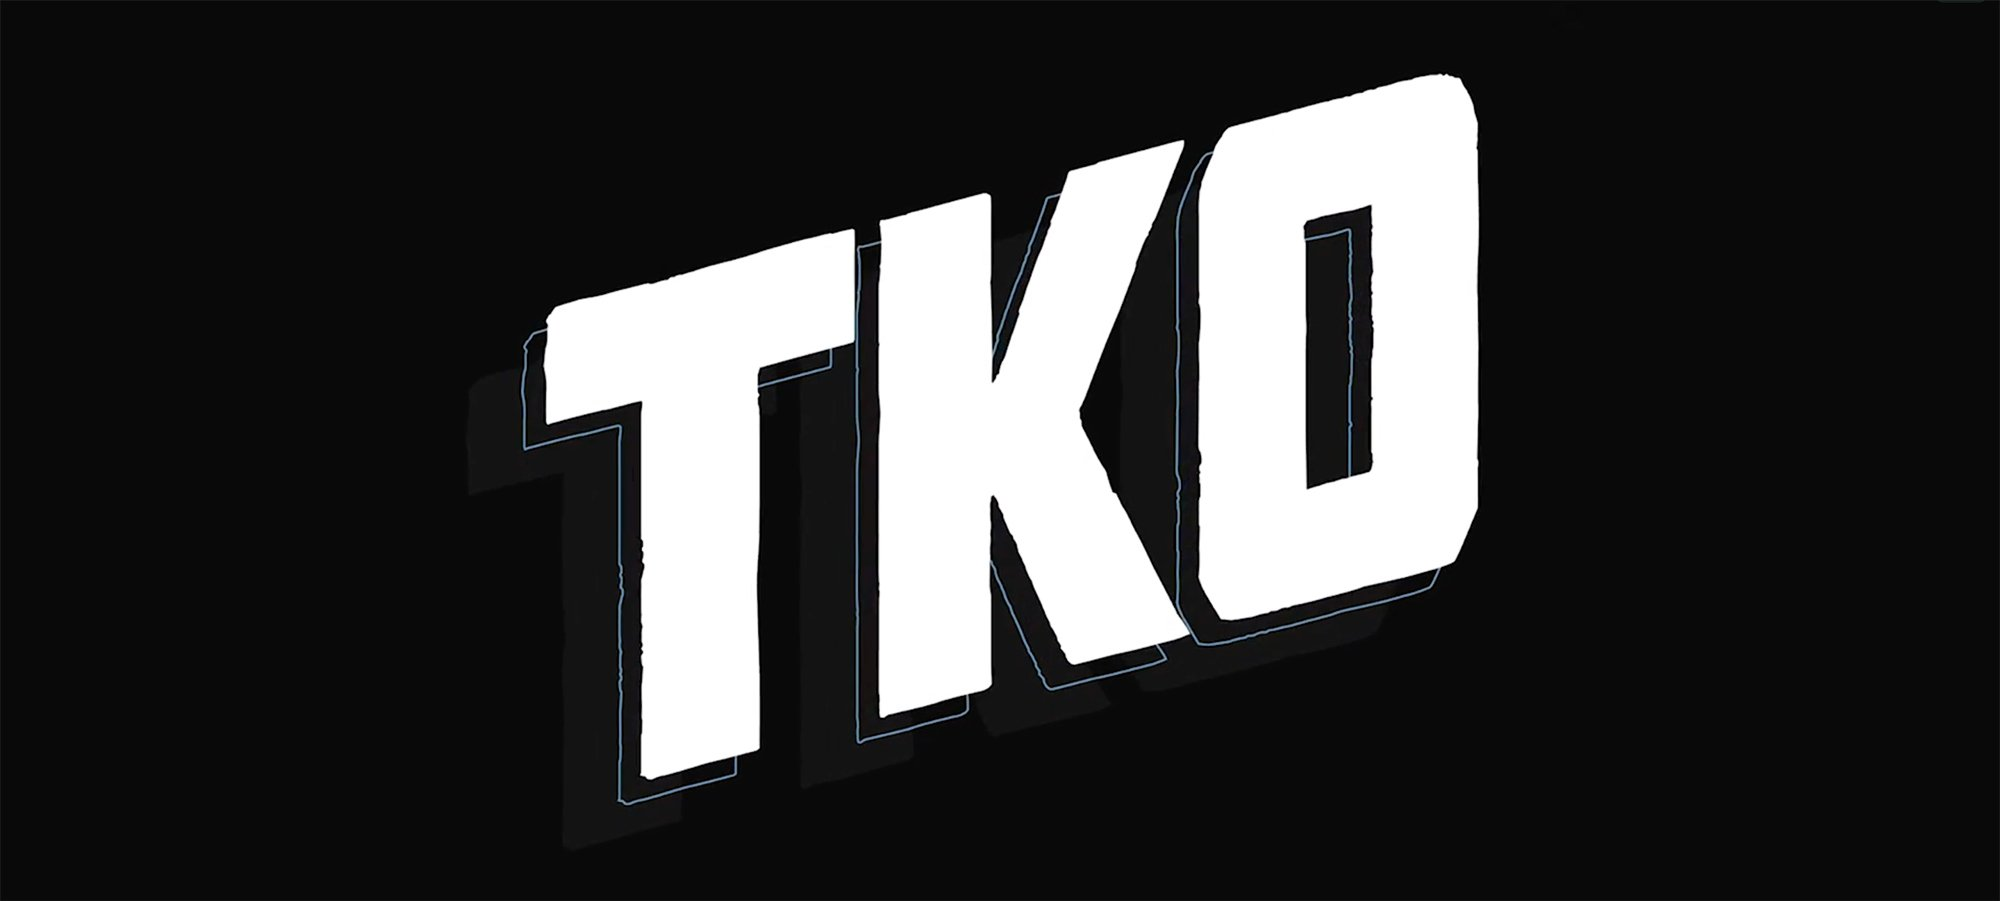 TKO Studios' third wave of graphic novels now available for pre-order